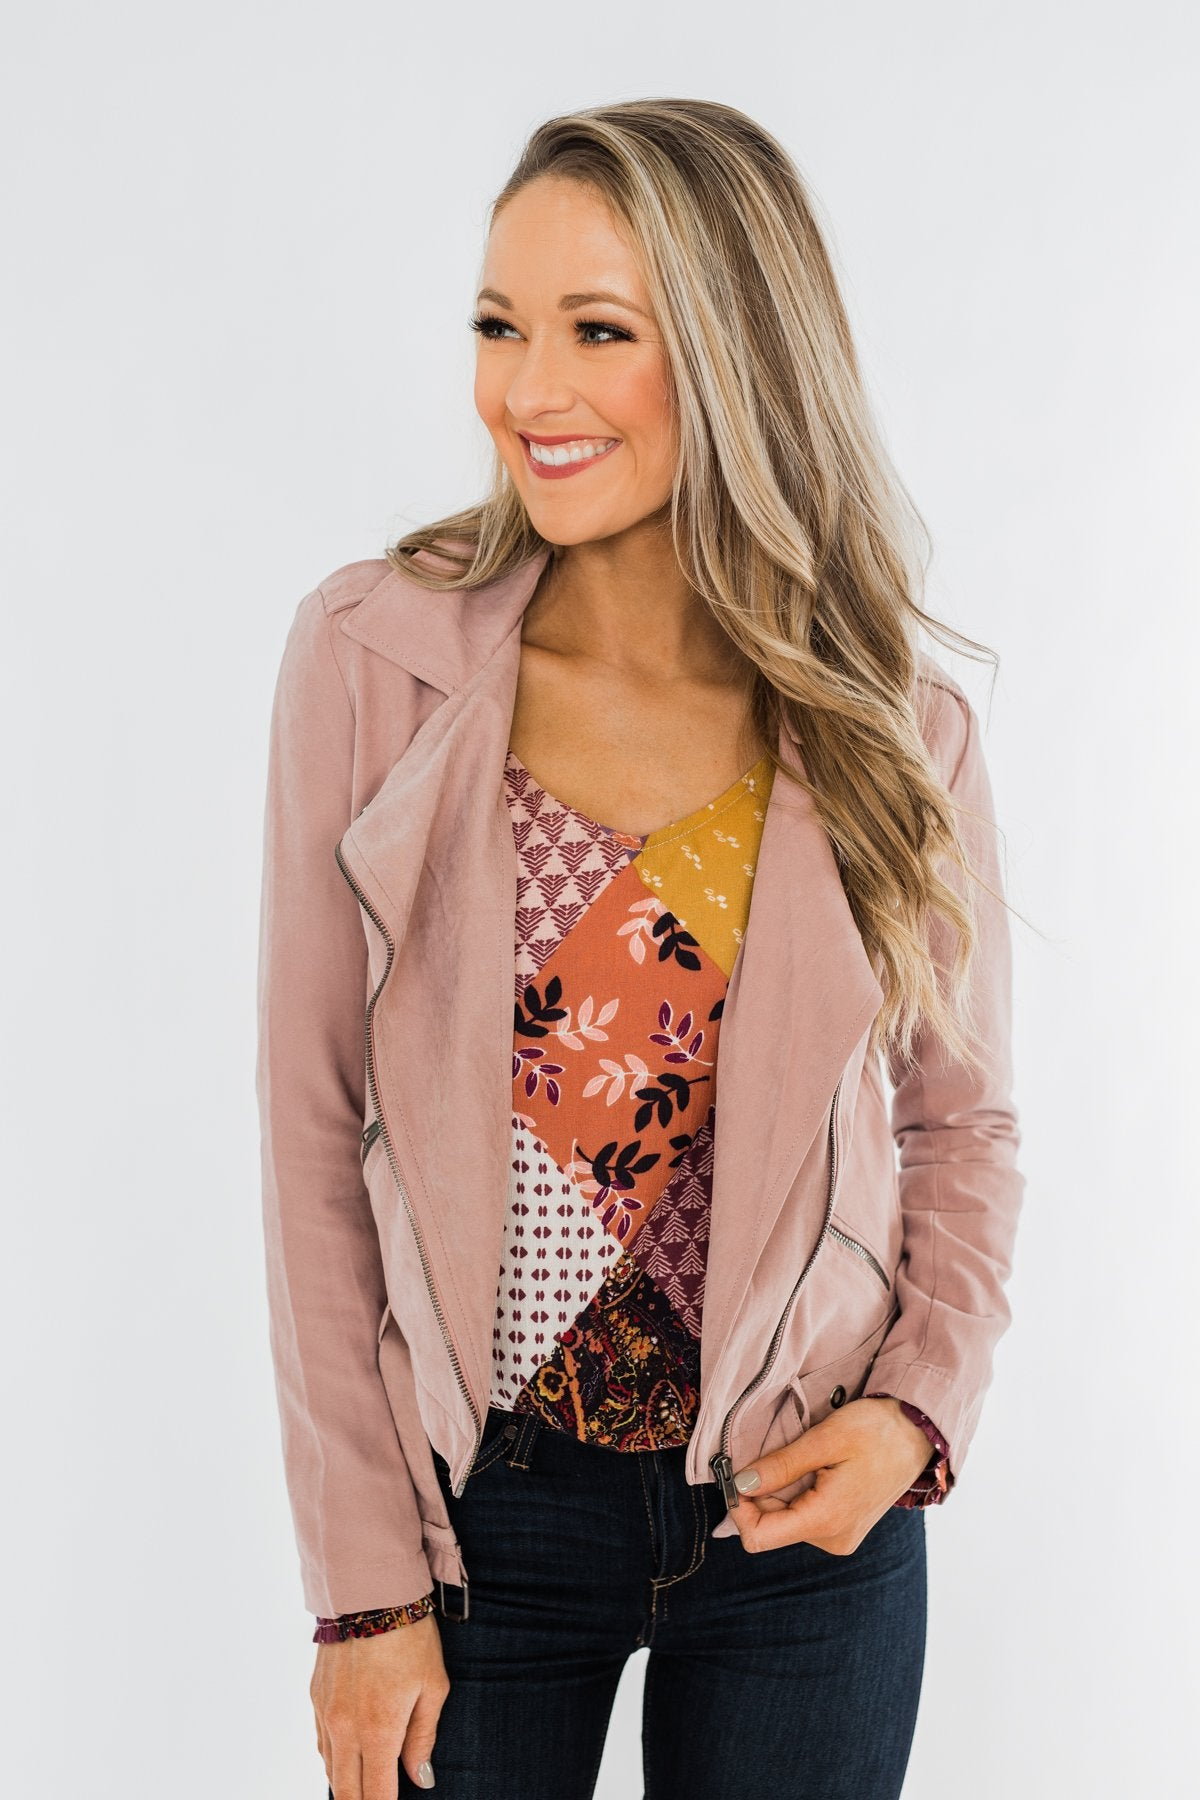 Lost In Your Eyes Lightweight Jacket- Light Dusty Mauve